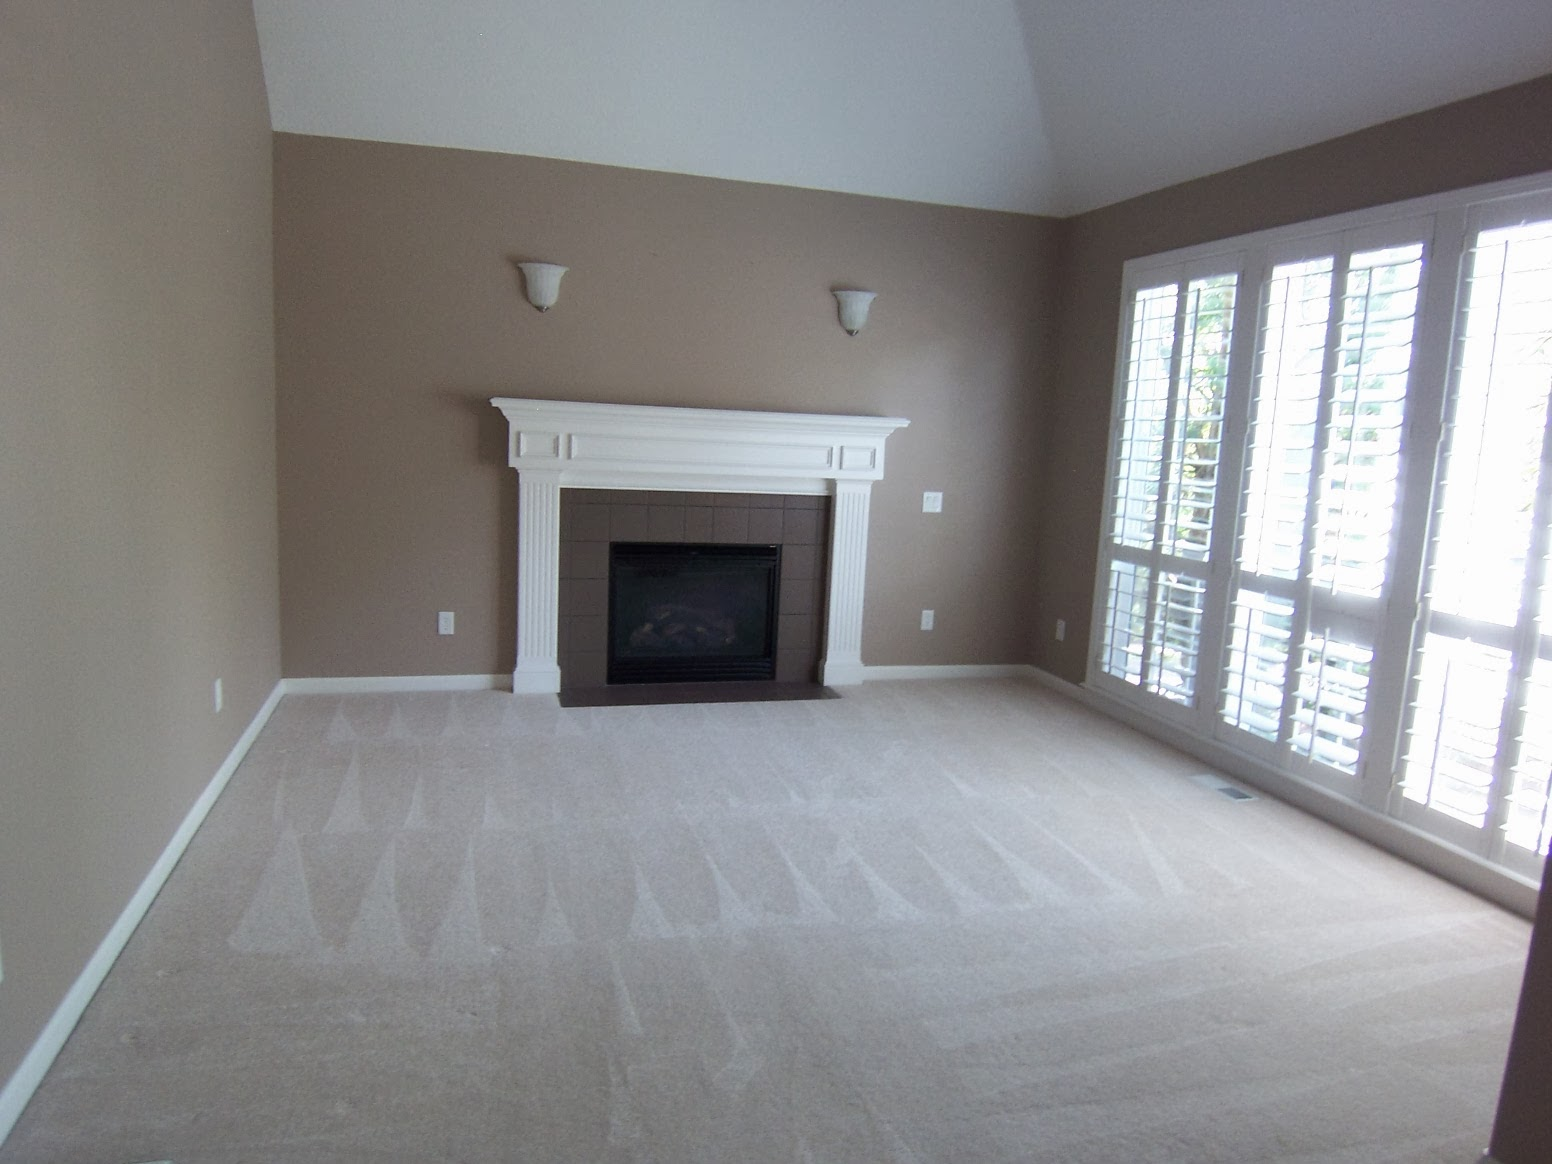 Home stage home staging transformations for How to stage a home